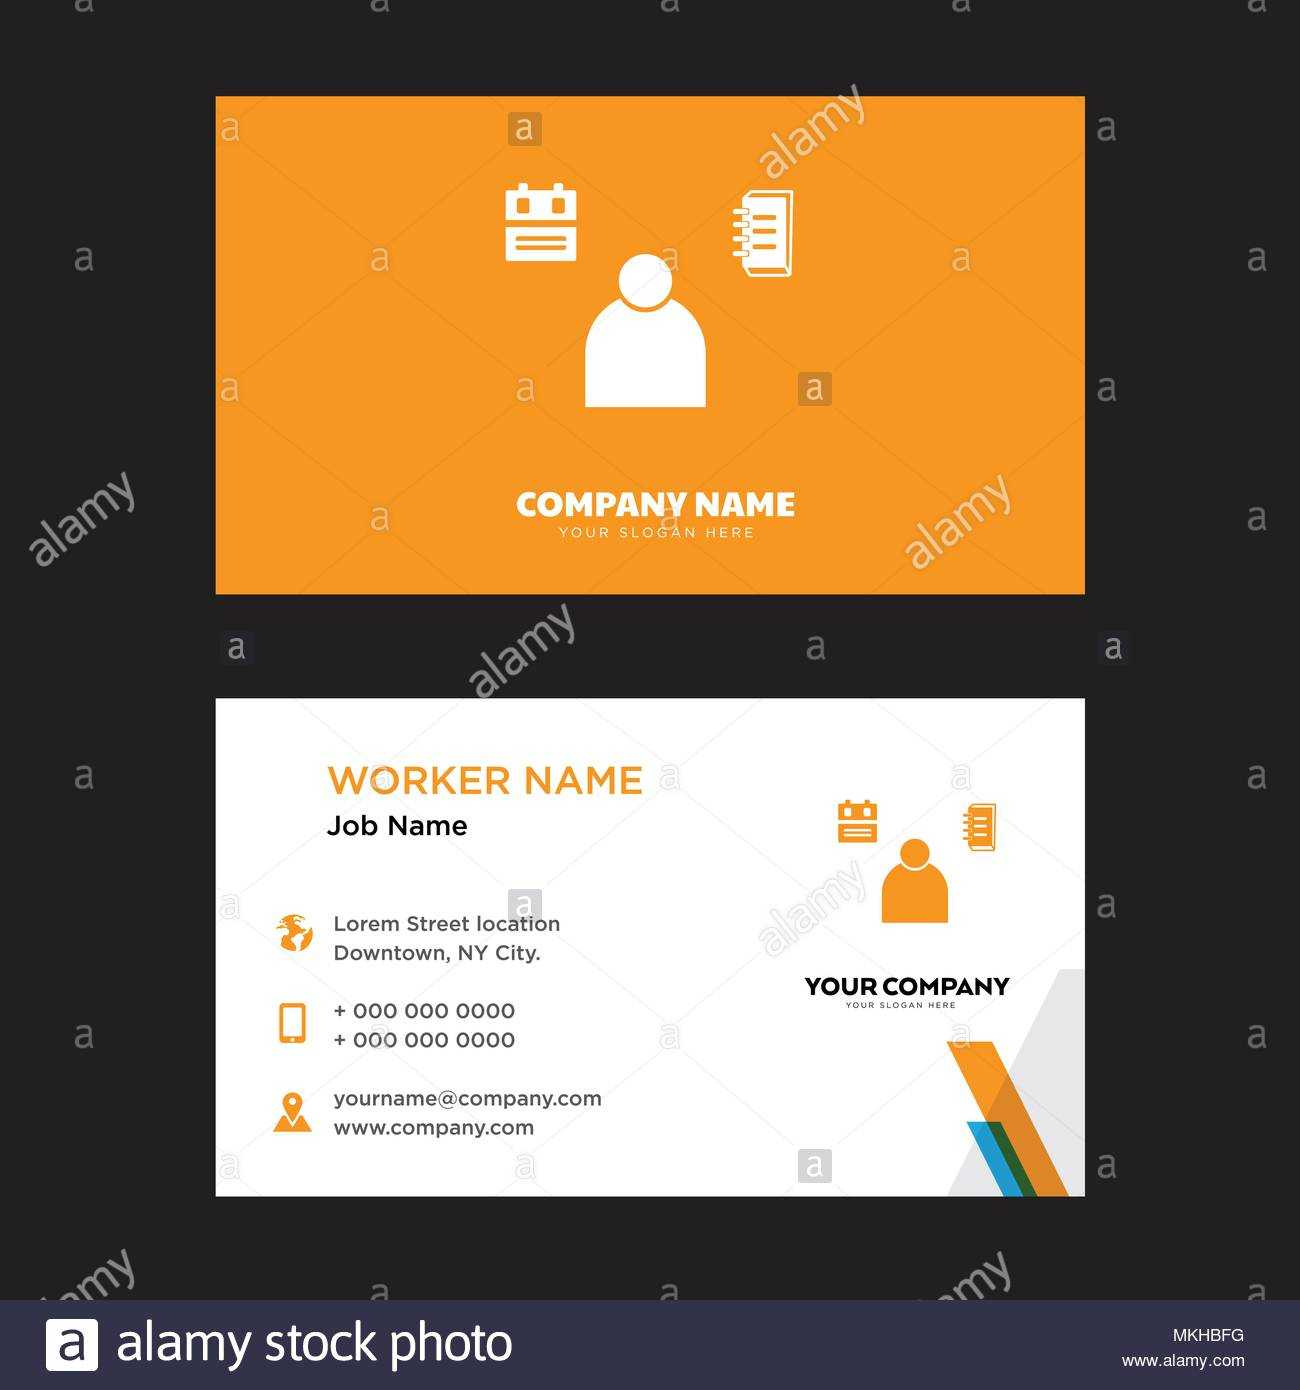 Student Business Card Design Template, Visiting For Your For Student Business Card Template